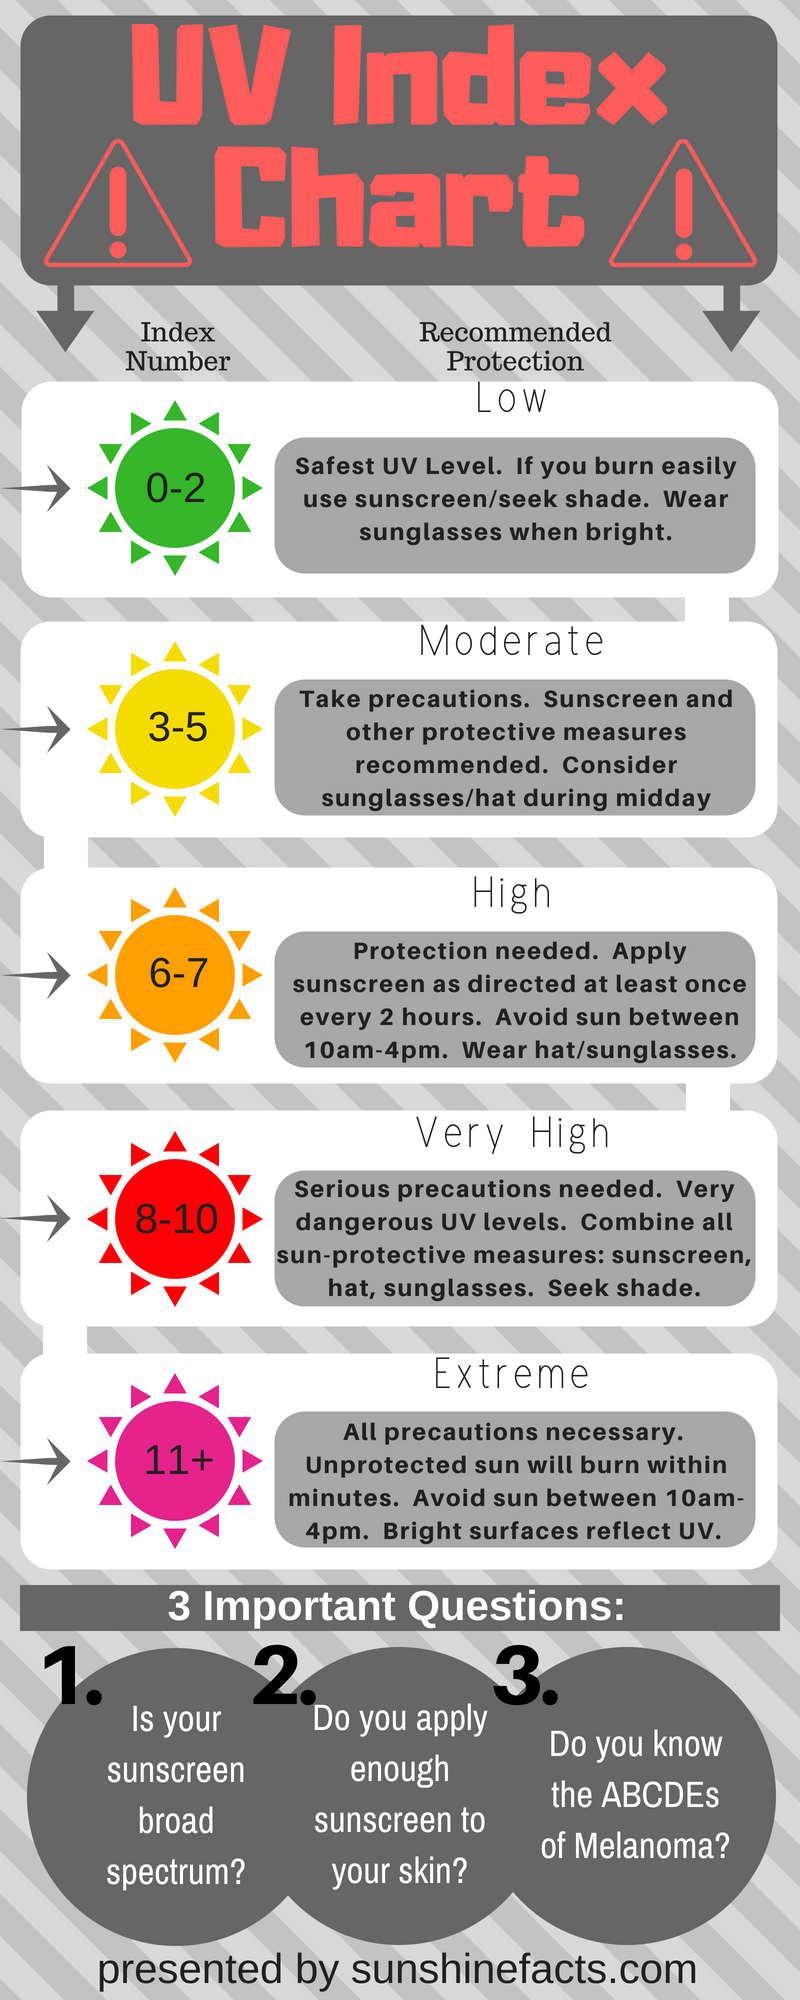 5 Key Things to Know About SunProtection